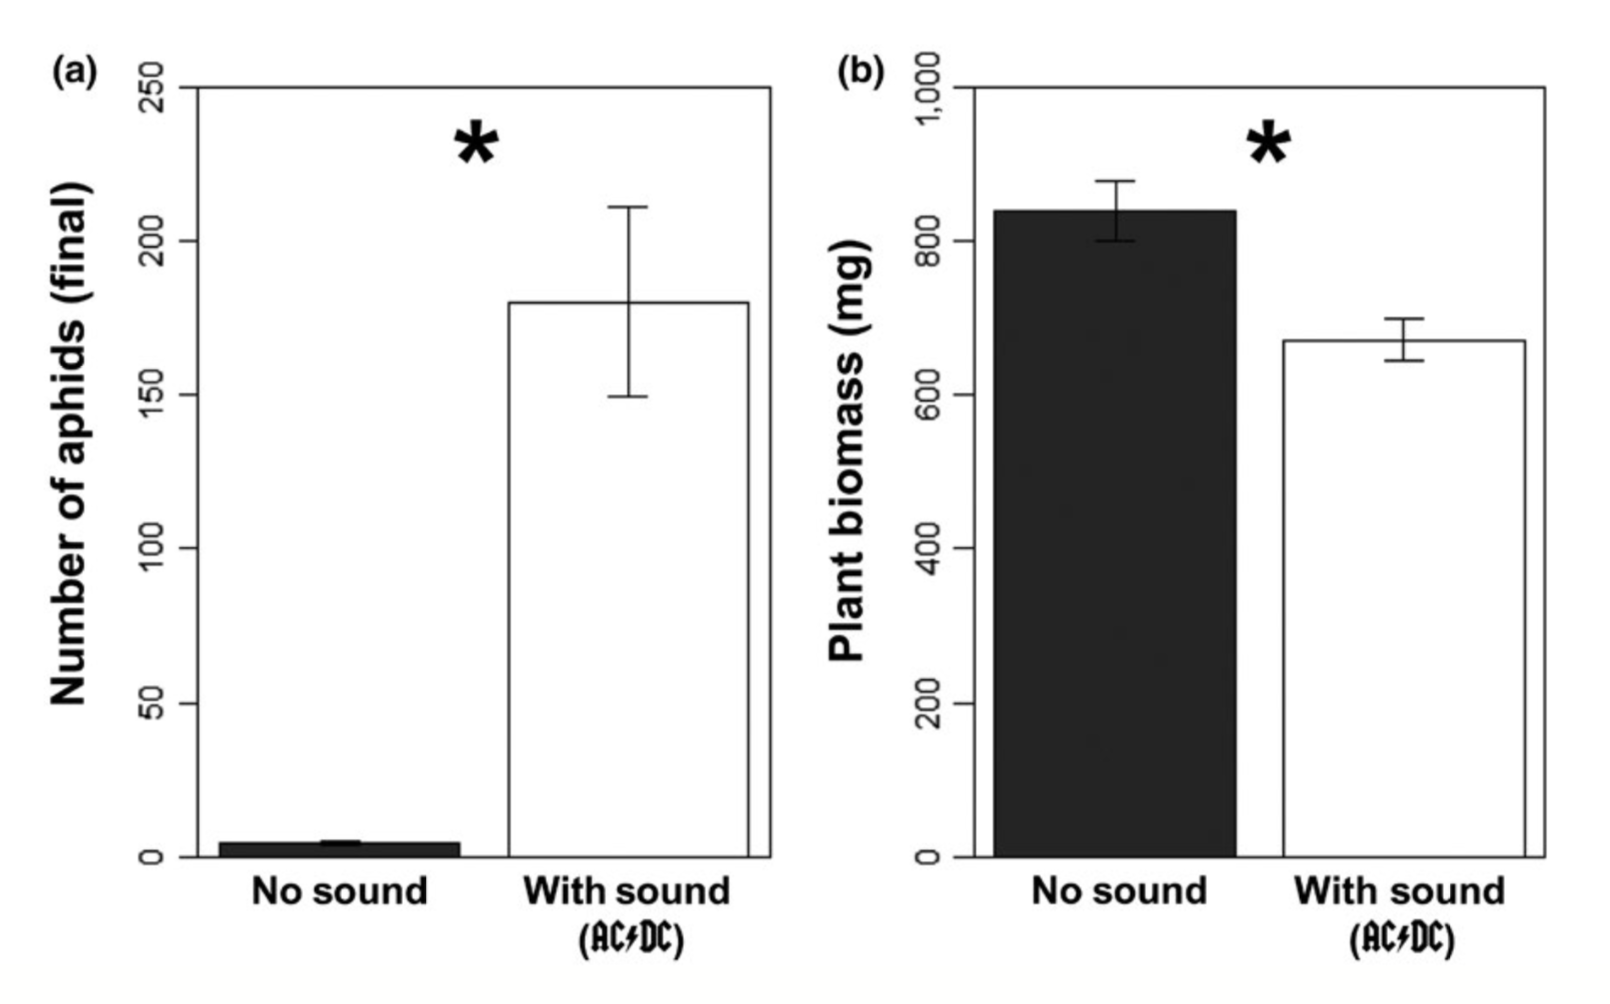 Music by AC/DC reduced predation by ladybugs allowing densities of aphids to explode (a). With more aphids feeding on soybean plants, plant biomass was significantly reduced when the classic rock was playing (b). Barton et al. 2018 .